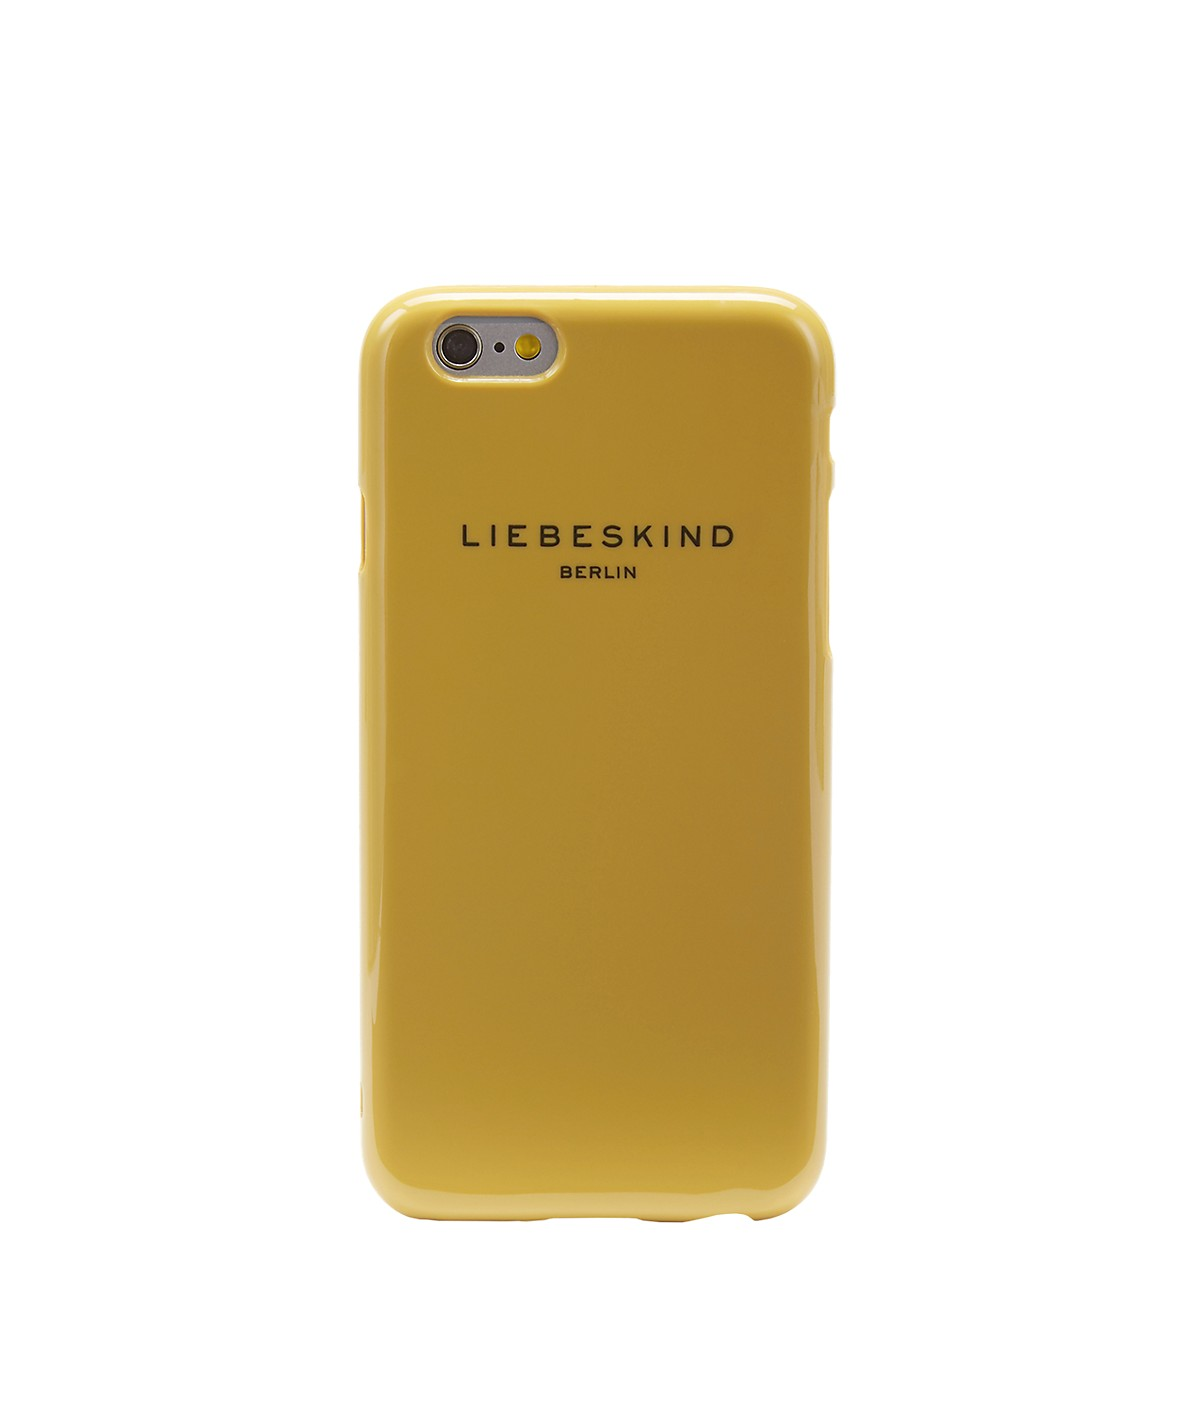 Bumper i6 mobile phone case from liebeskind